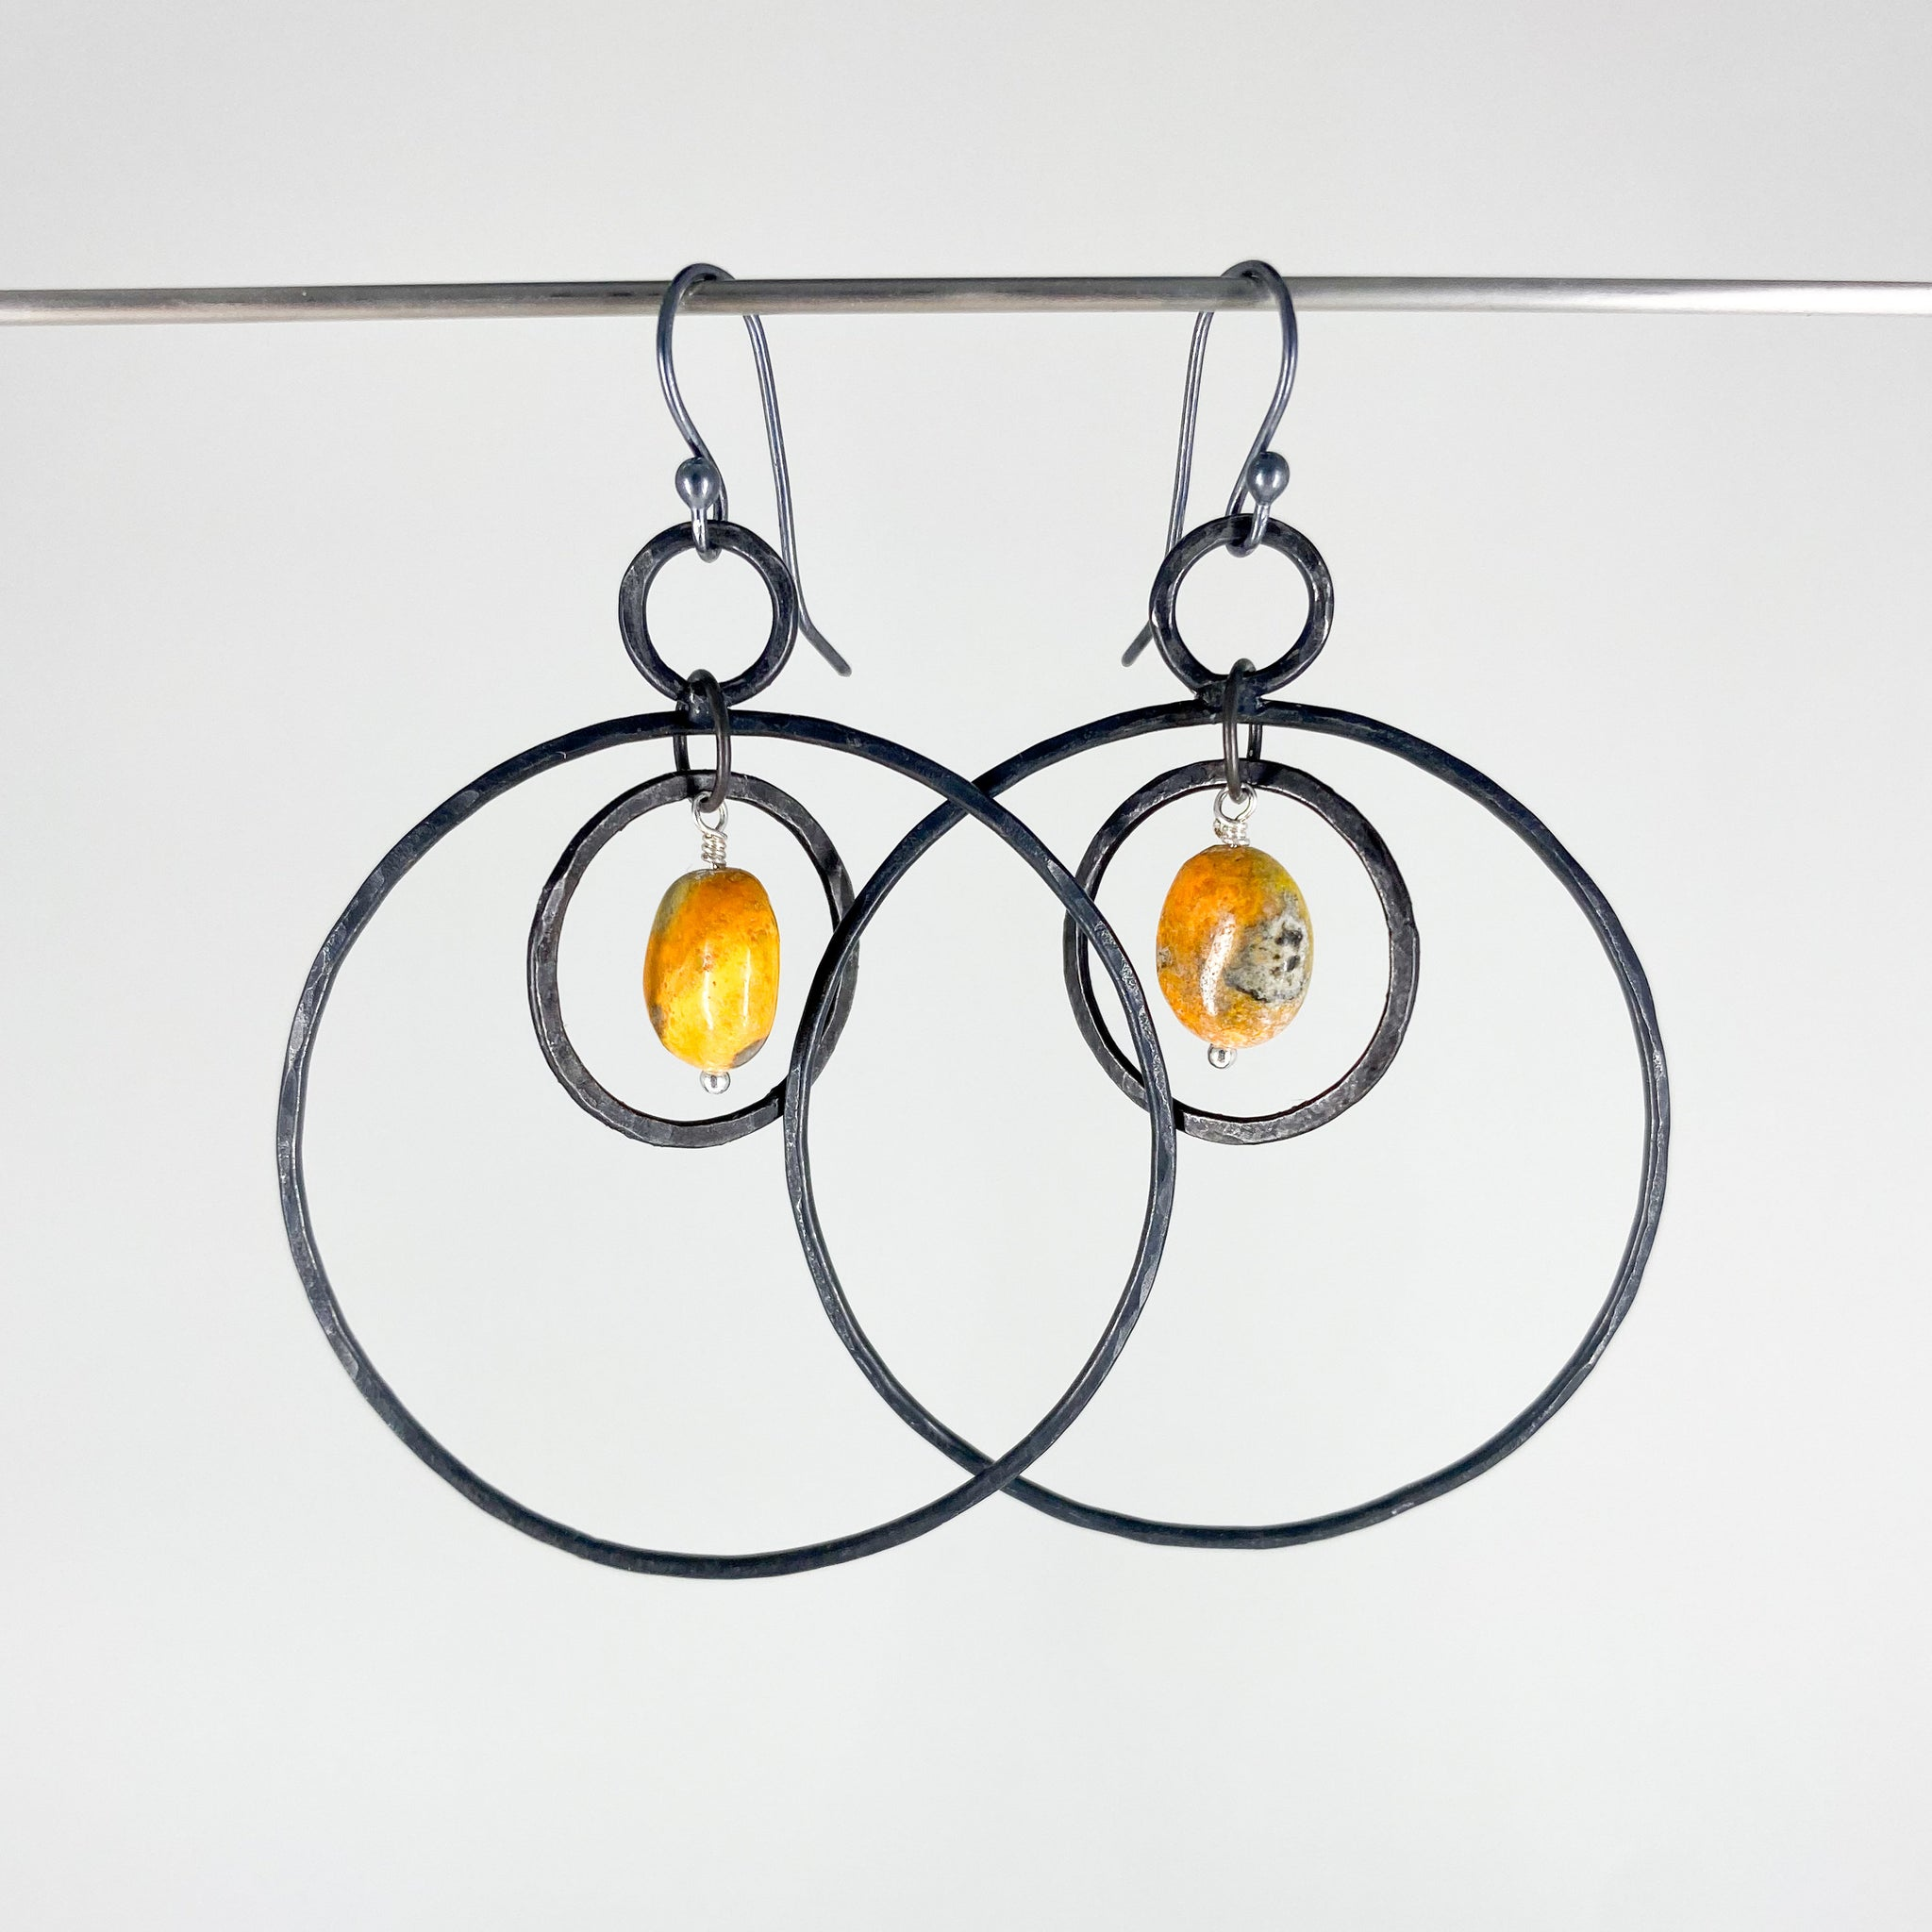 iron hoop earrings lightweight with bumblebee jasper, dangle hoop earrings in iron, jasper earrings, hand forged earrings